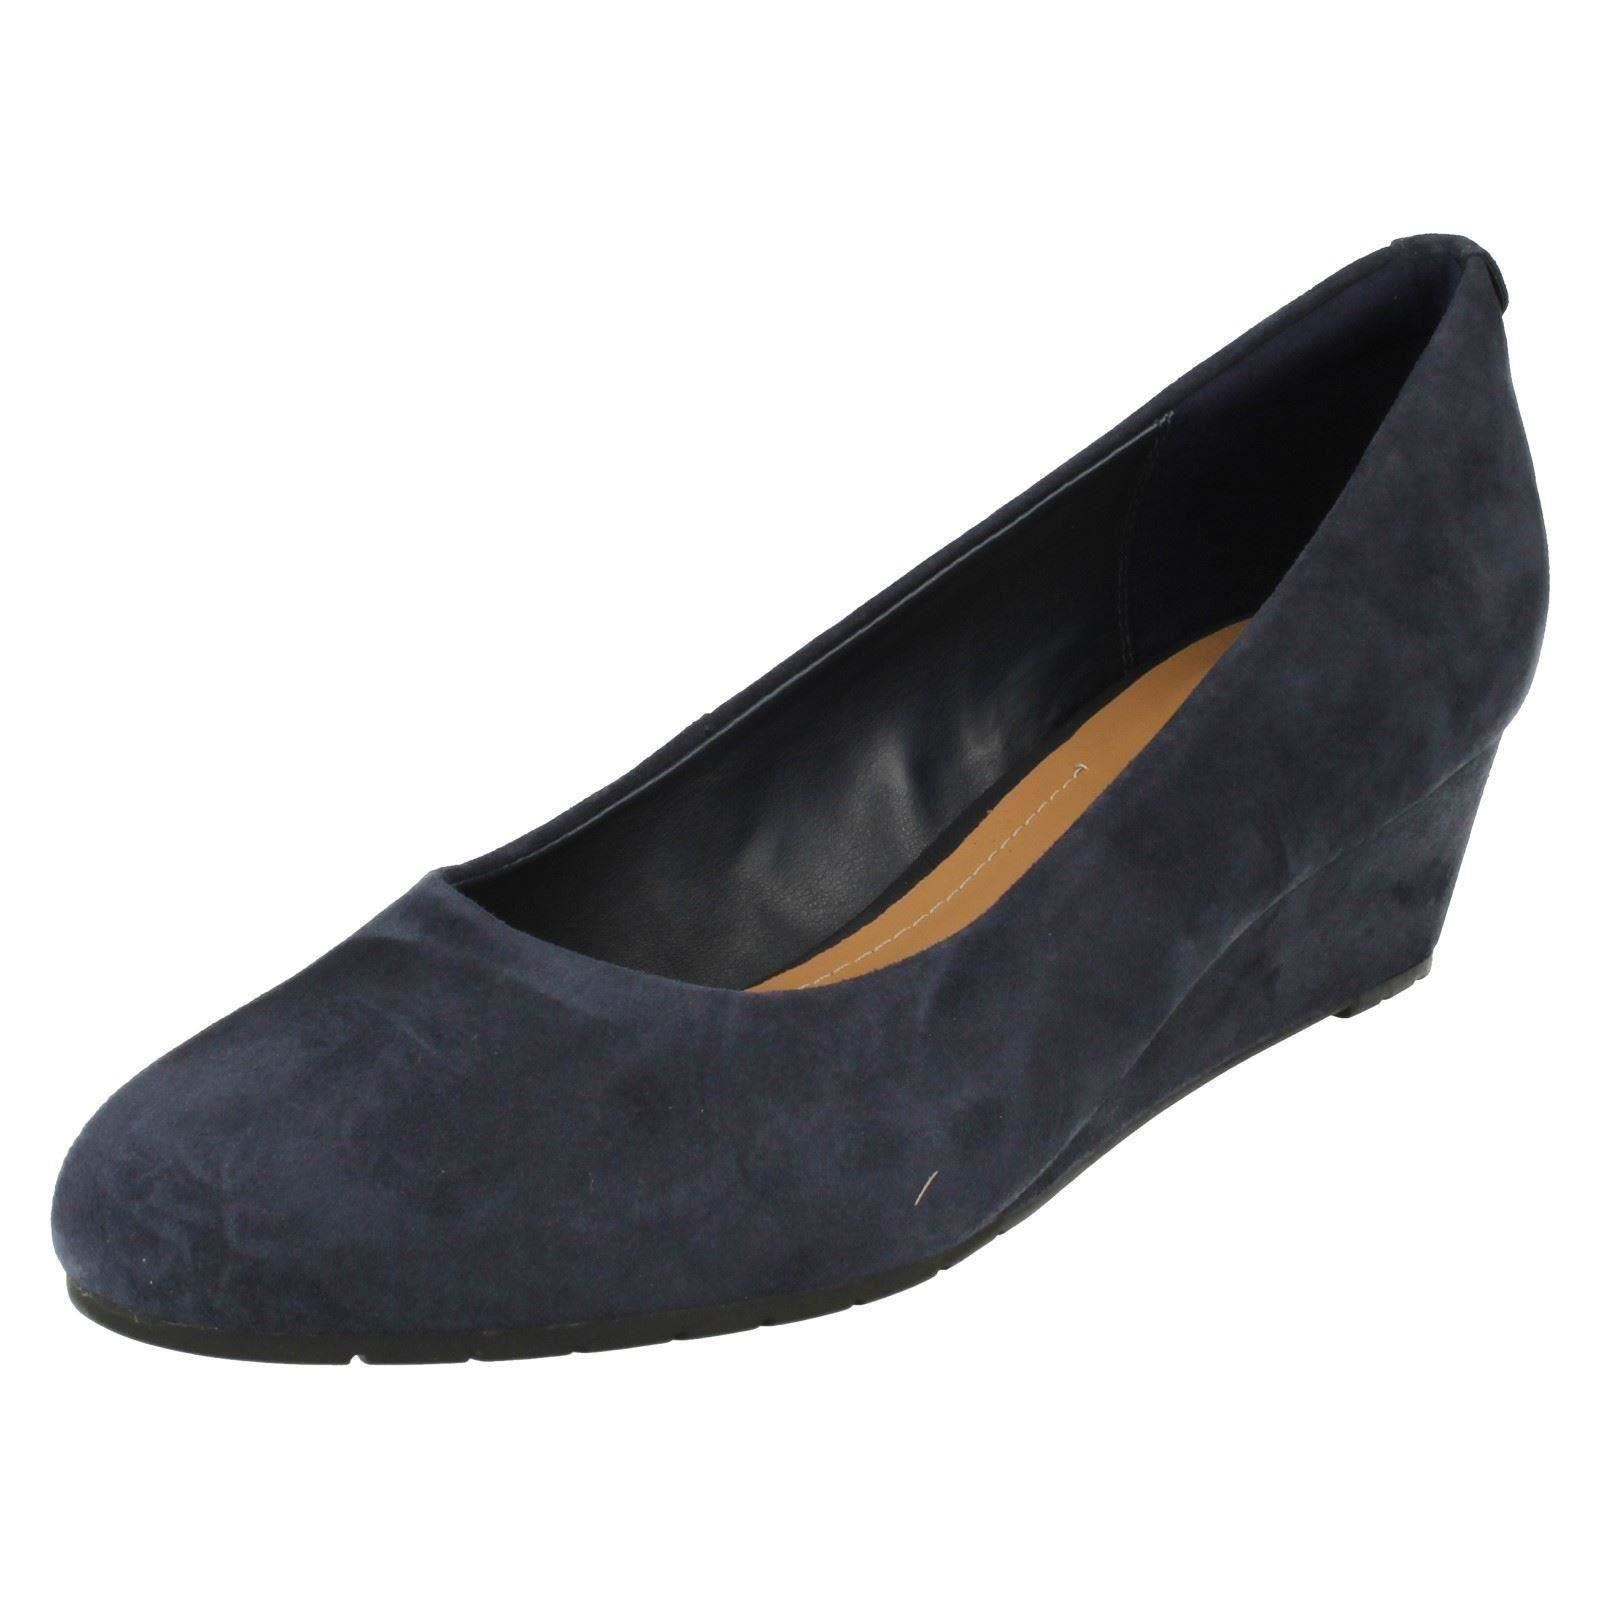 4bc94ad64181 Ladies Clarks Slip on Wedge Shoes Vendra Bloom Navy Suede 7.5 UK D ...